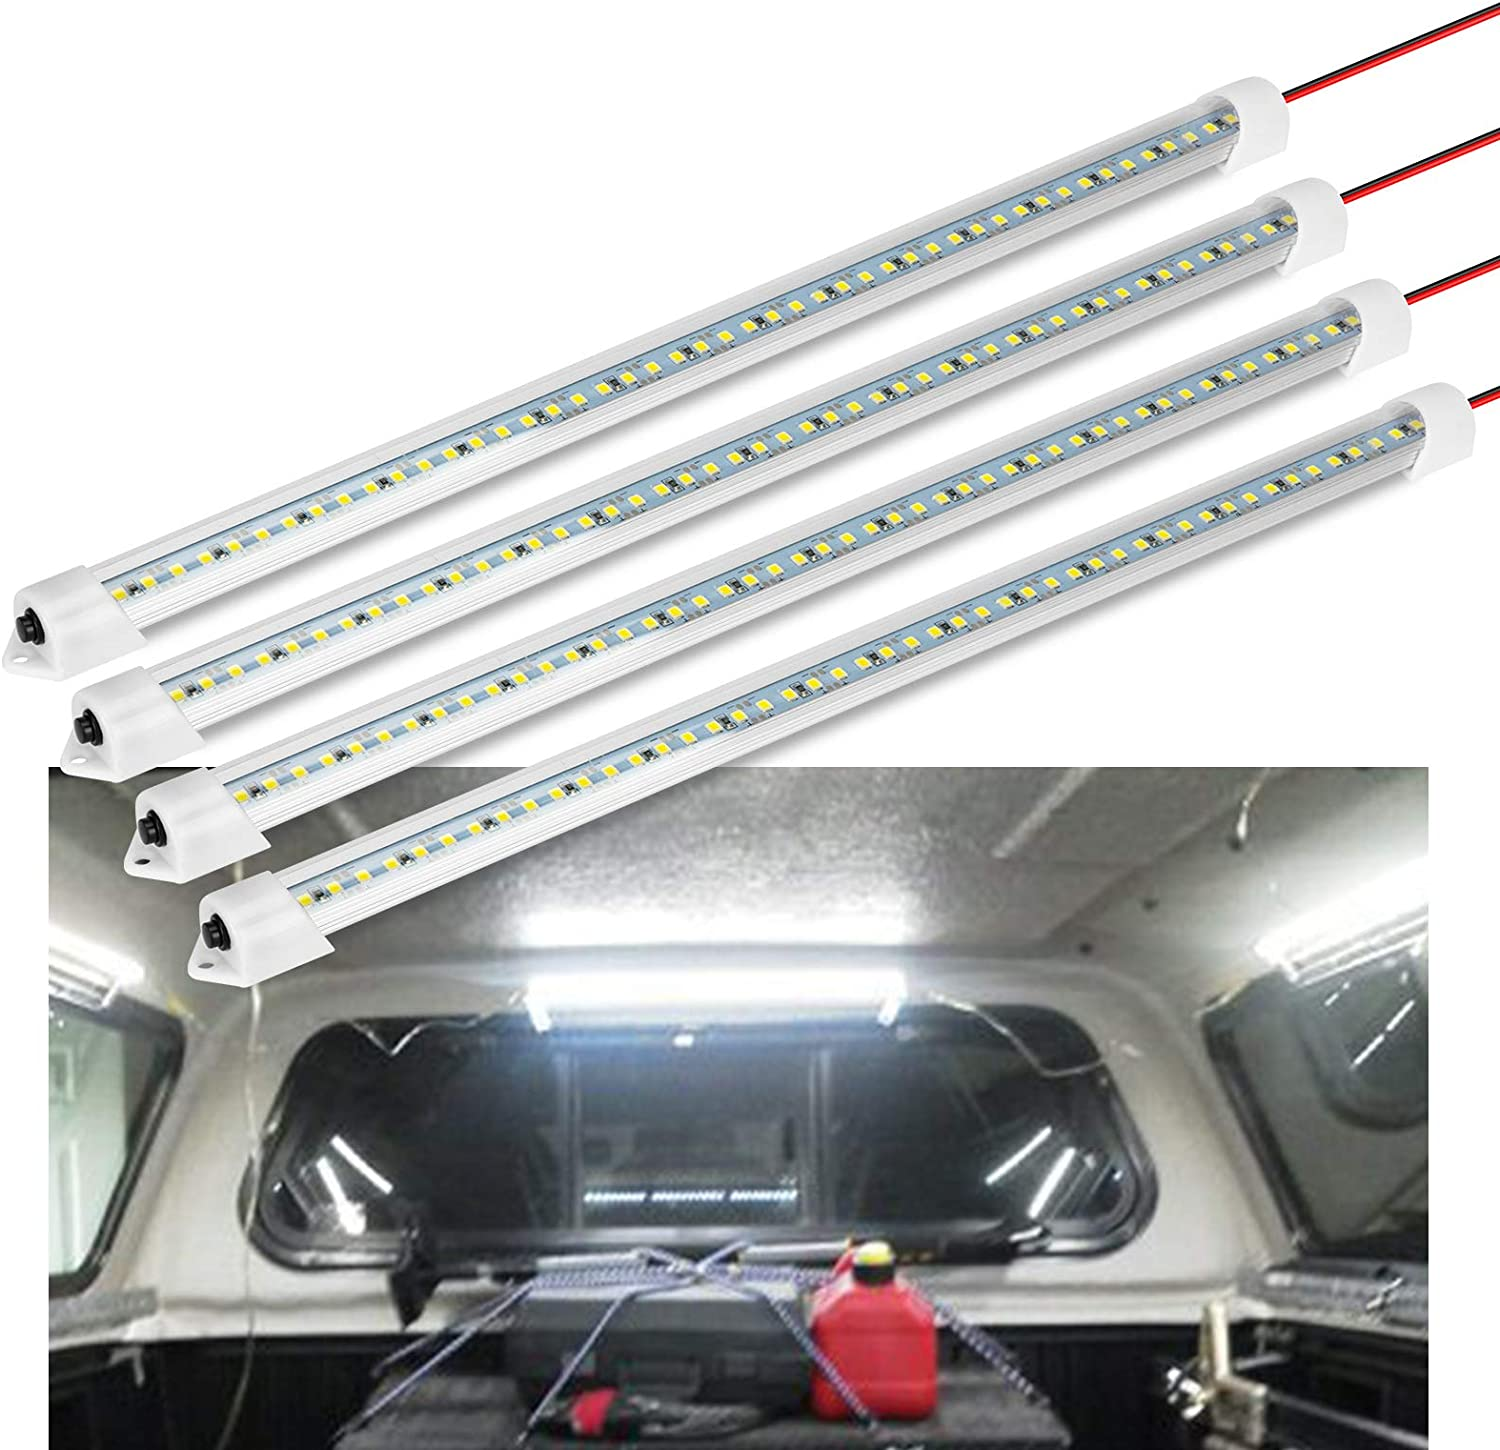 RV 12V Interior LED Light Bar Boat 700LM 3W DC 12V LED Light Strip with Switch for Car 12 Volt LED Lighting Cabinet 6500K White Light for Trailer Van Cargo Slim Enclosed Trailer Lights Fixture Truck Bed 4 Pack